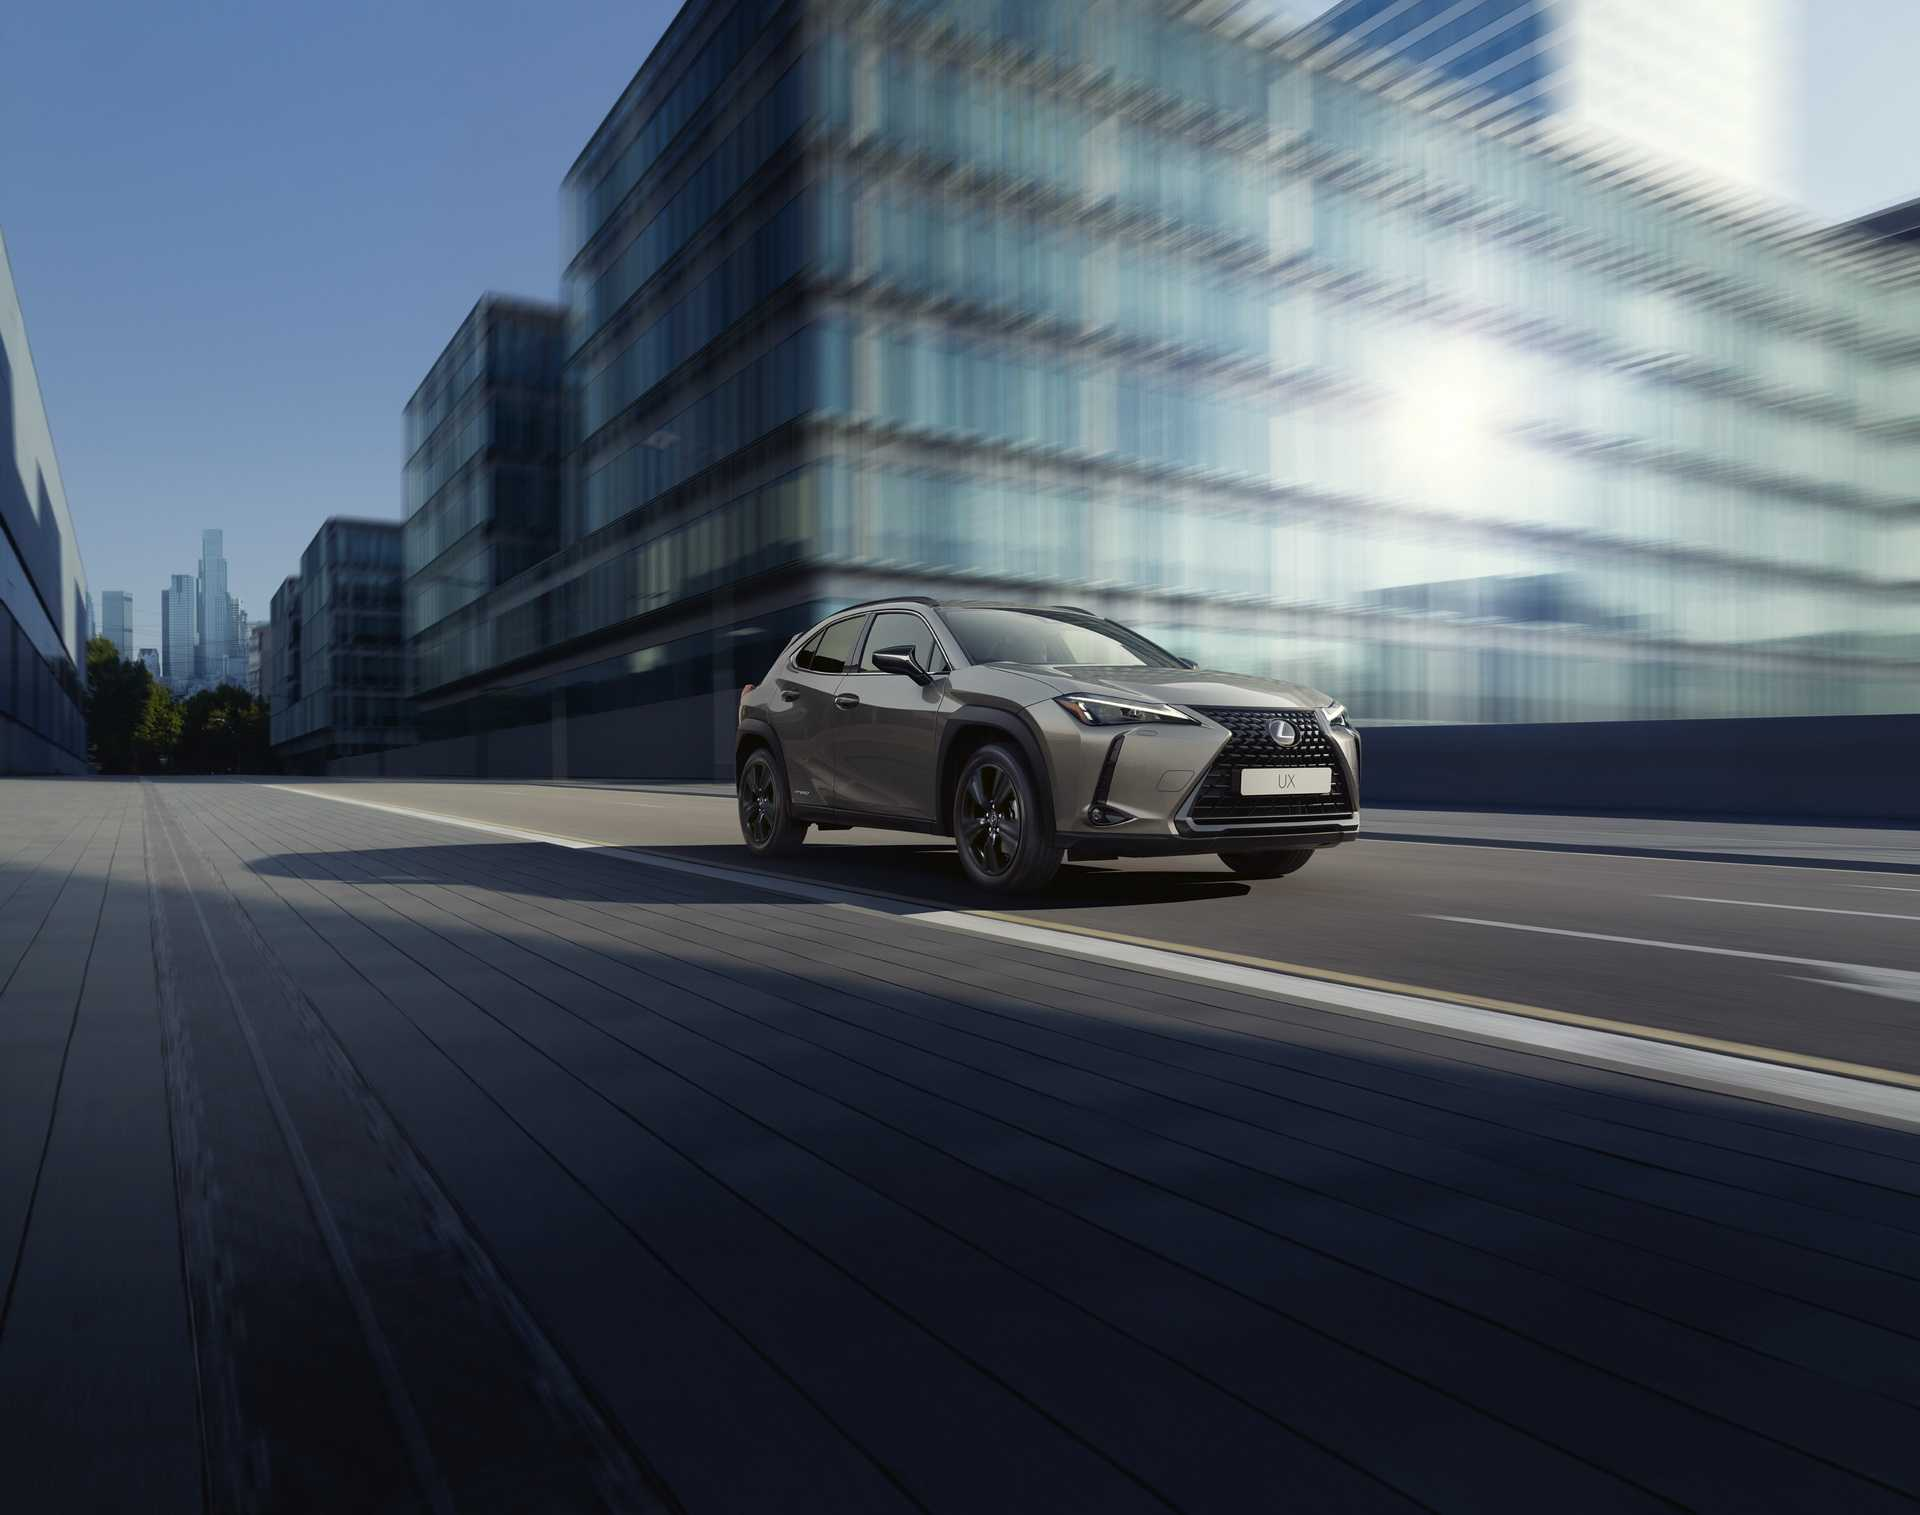 2021 Lexus UX 250h Gets a Stylish and Premium Upgrade in New Sports Edition